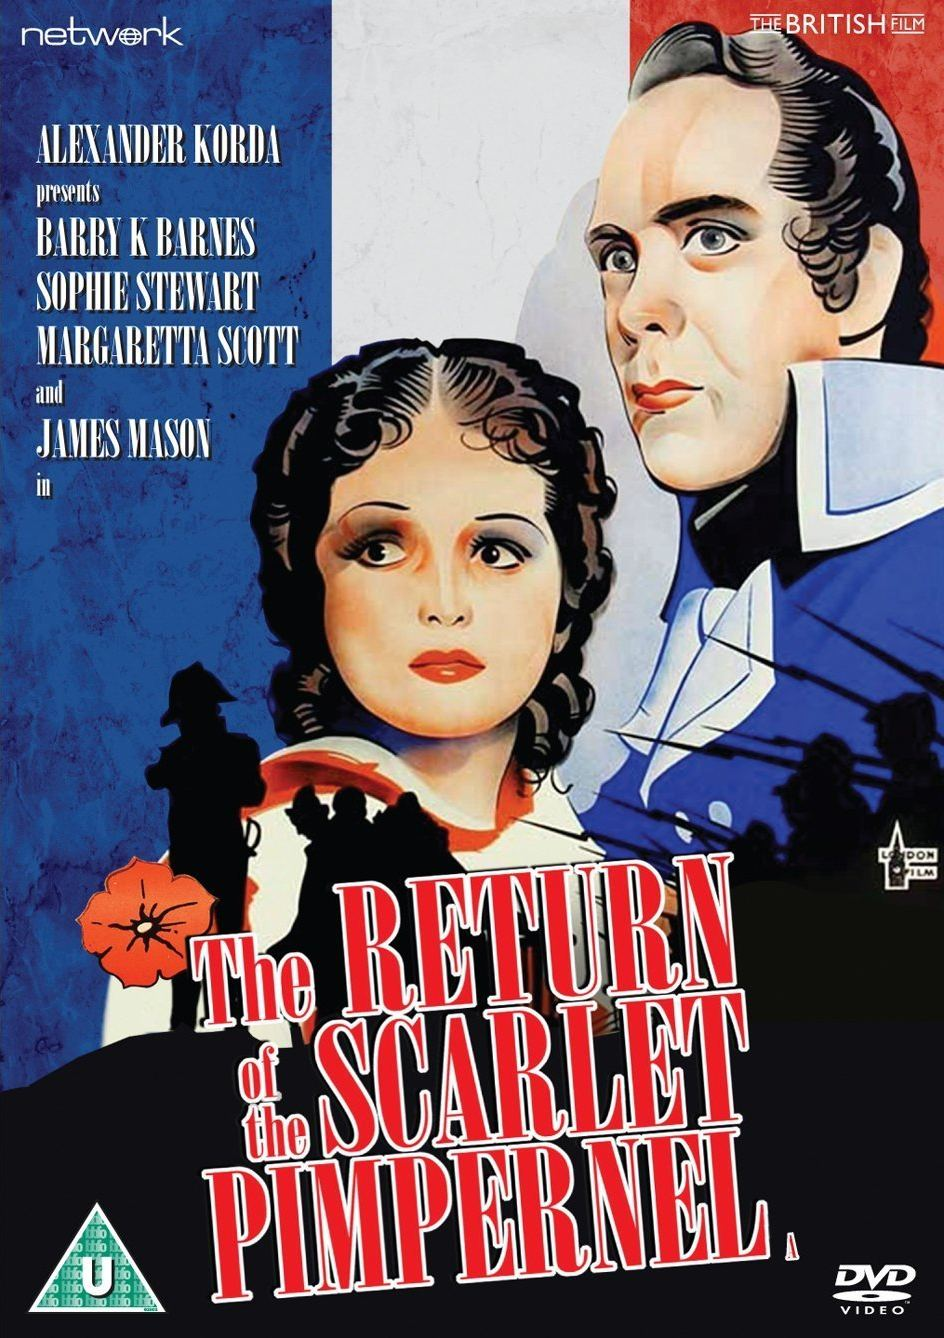 The Return of the Scarlet Pimpernel DVD from Network and The British Film